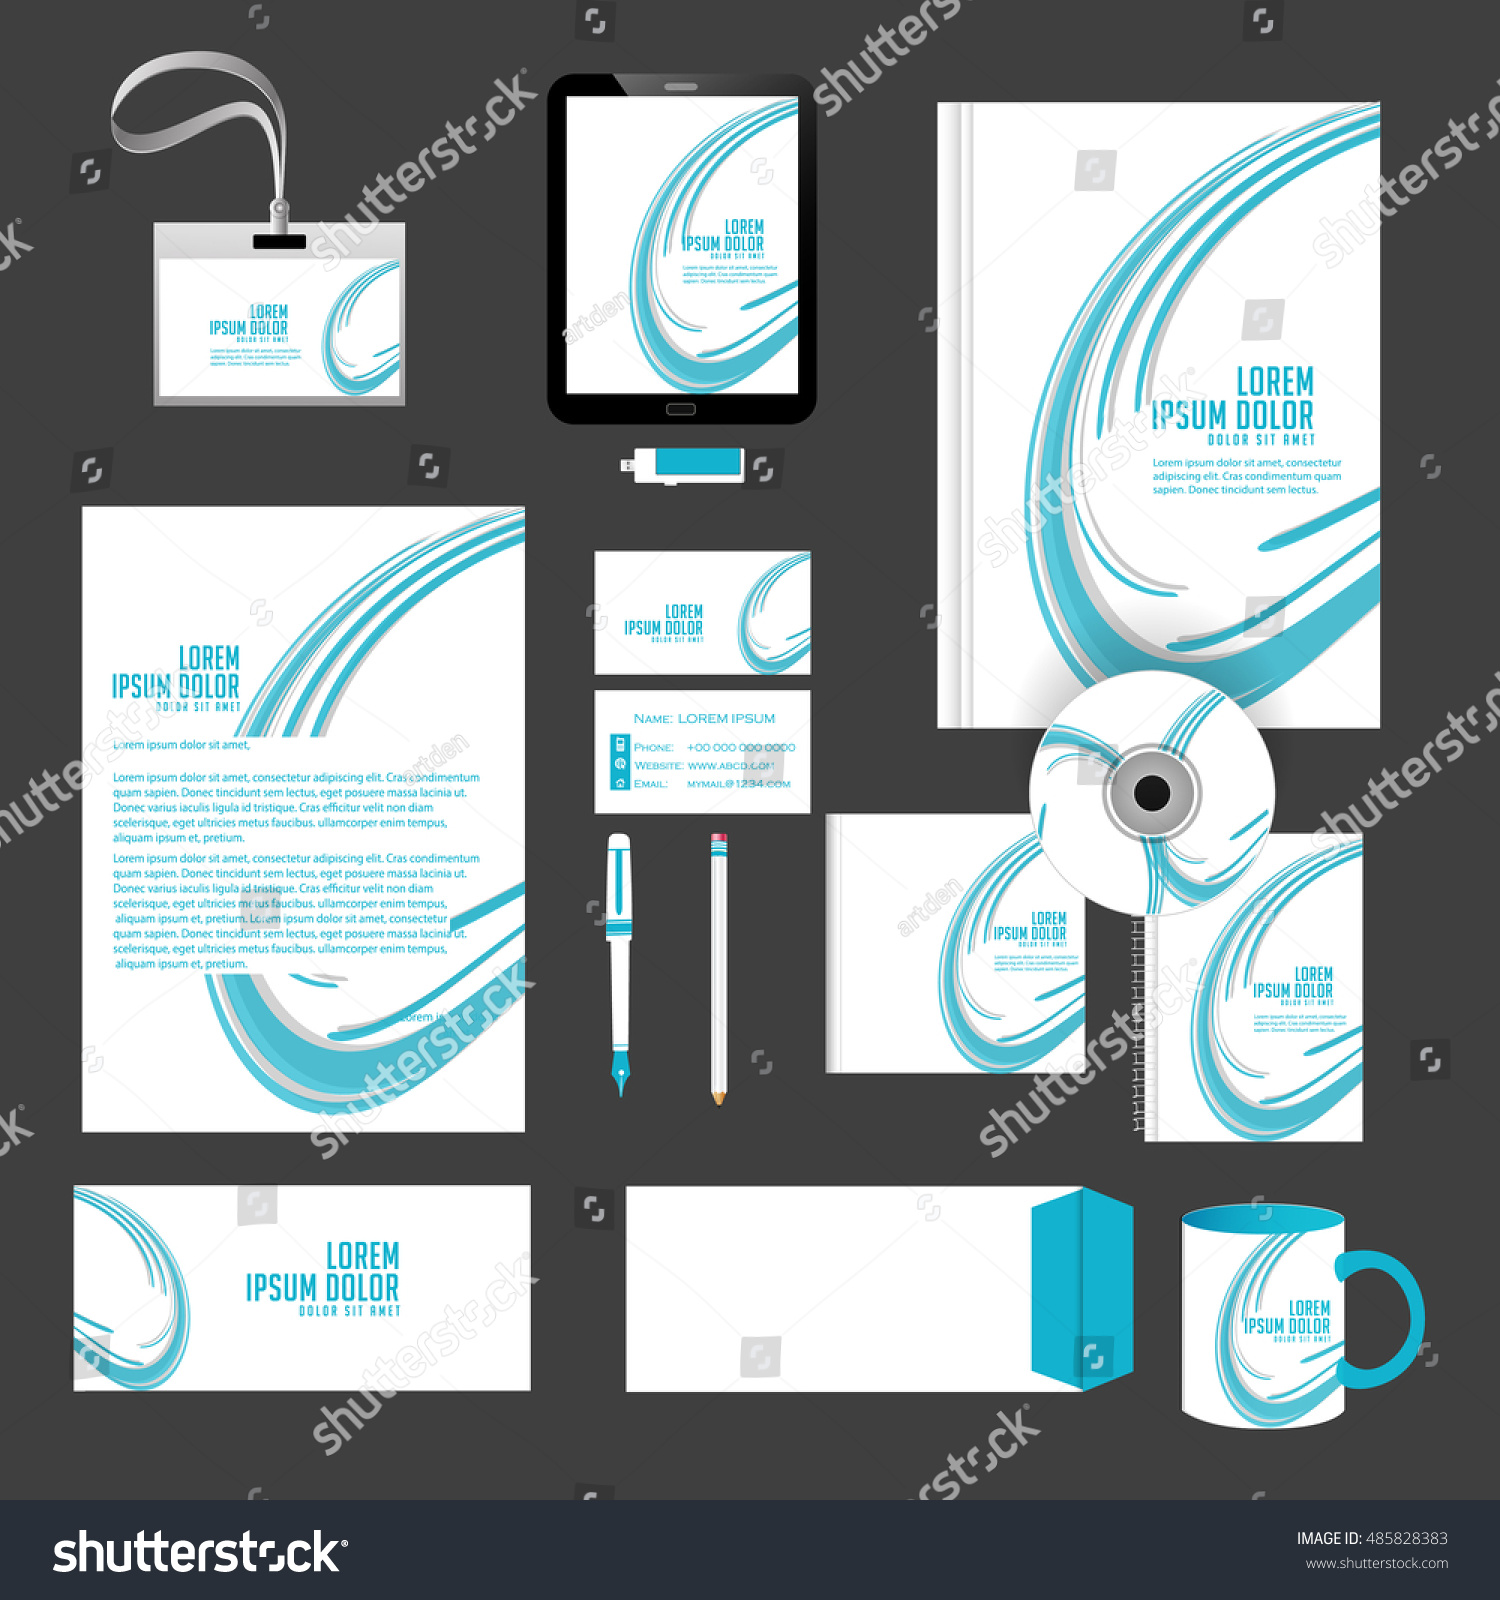 Creative Vector Templates Office Stationery Nice Stock Vector ...